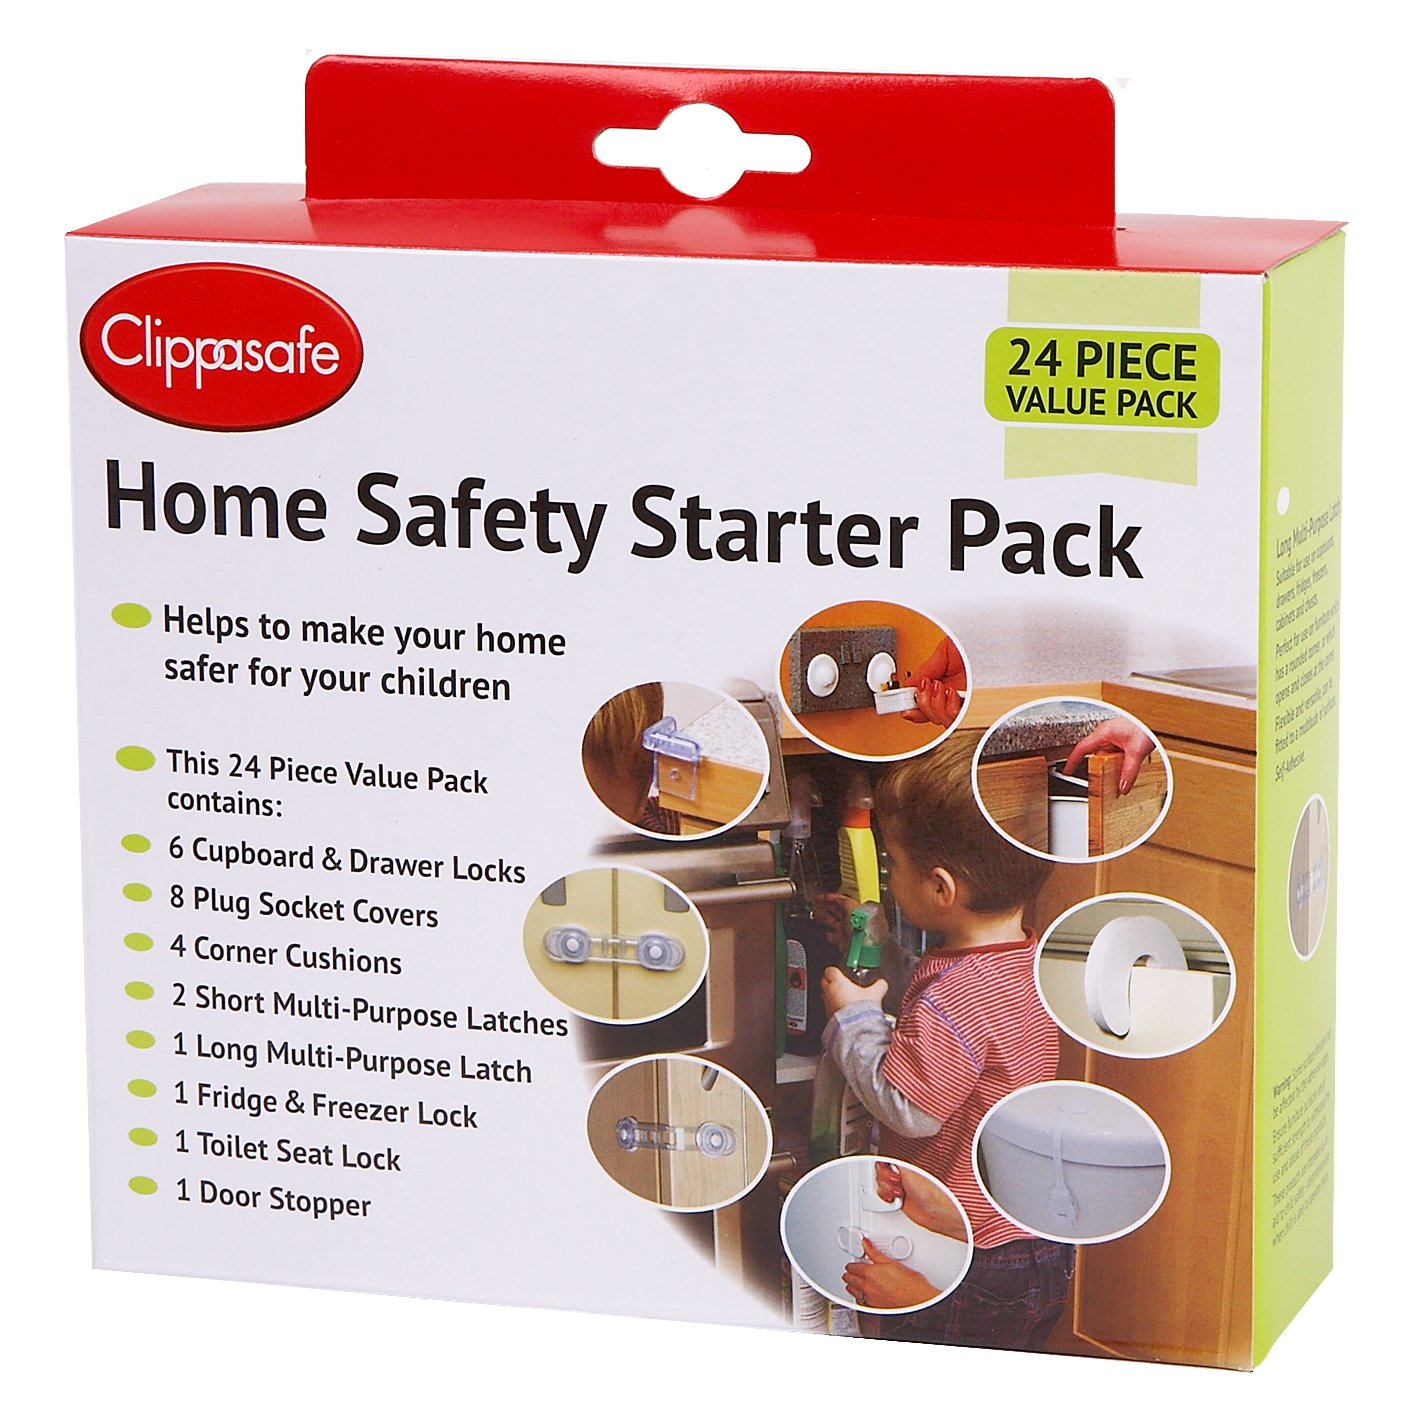 Clippasafe Home Safety Starter Pack (24 Pieces) CL900